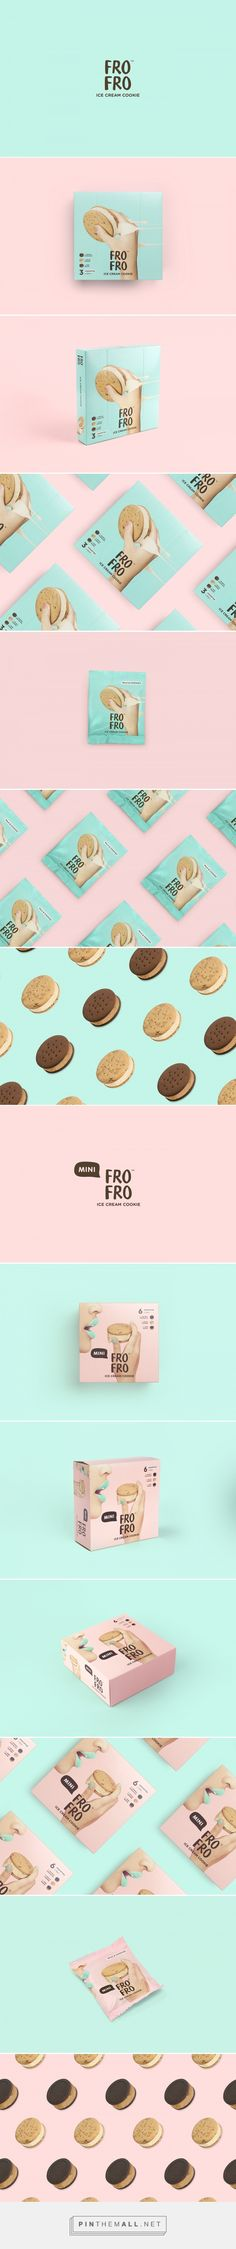 FRO FRO™ Branding by Bravo on Behance | Fivestar Branding – Design and Branding Agency & Inspiration Gallery